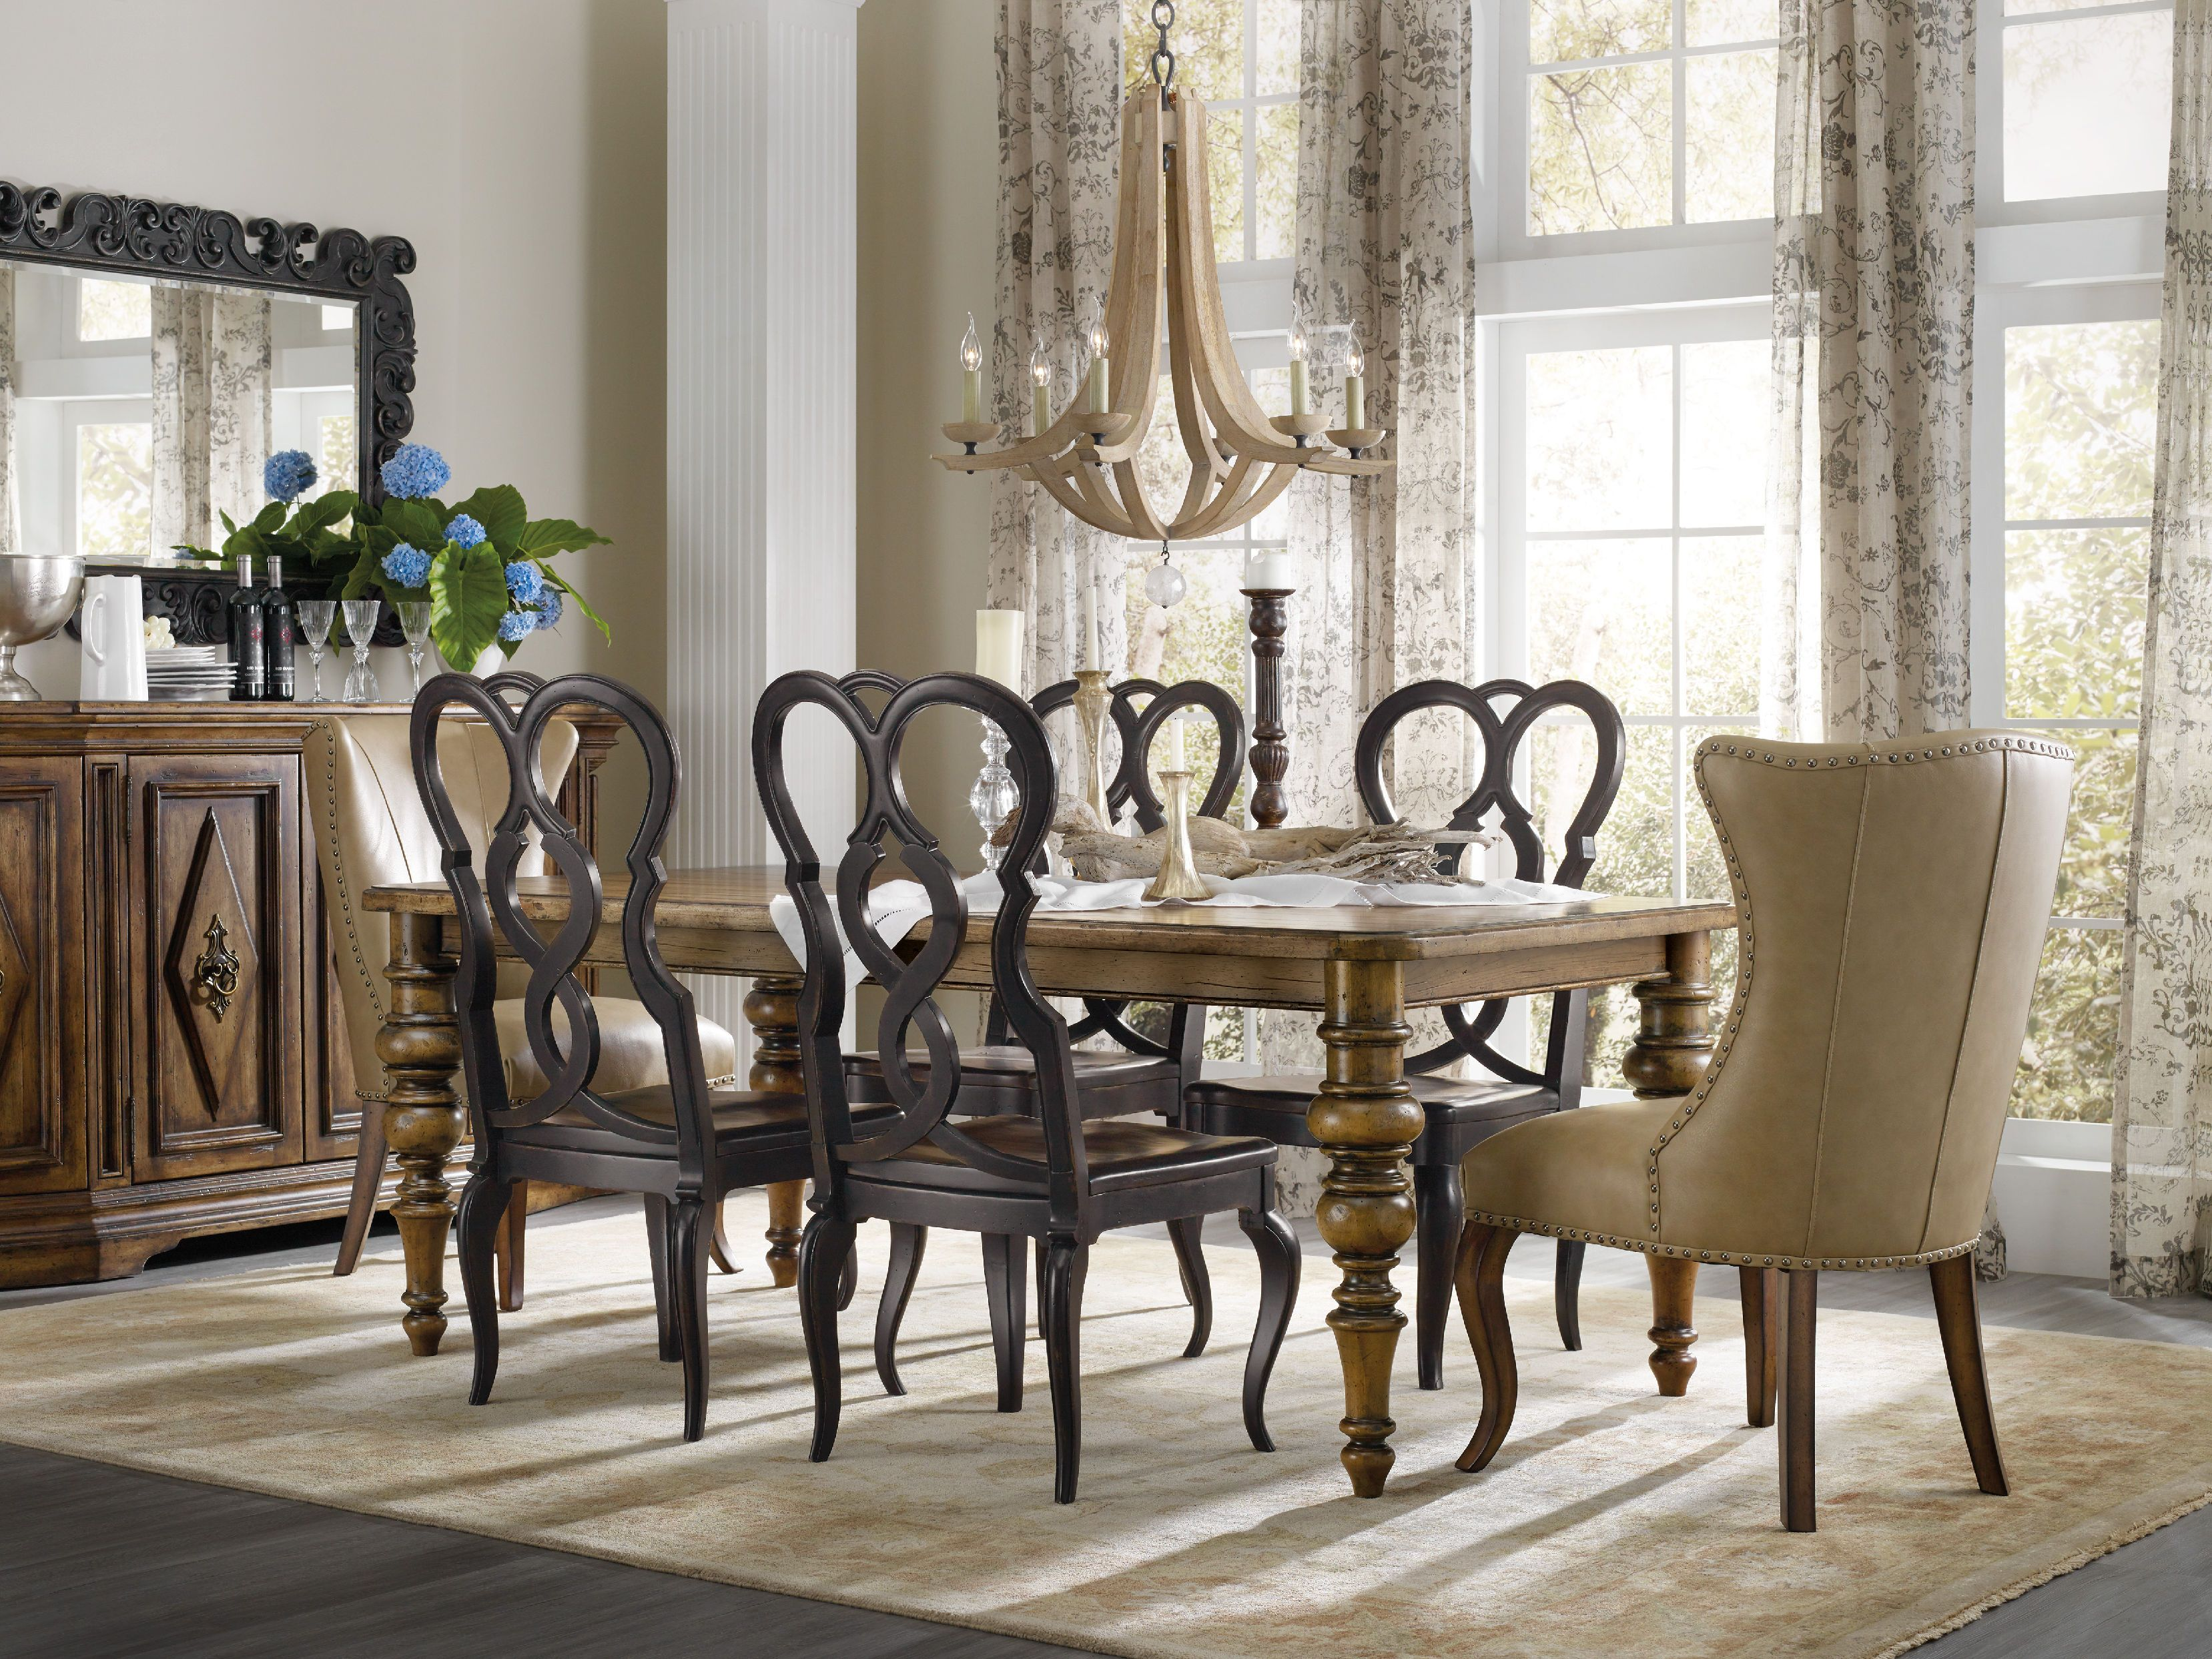 Hooker Furniture Dining Room Auberose Rect Leg Table W 2 20in Leaves 1595 Baton Rouge